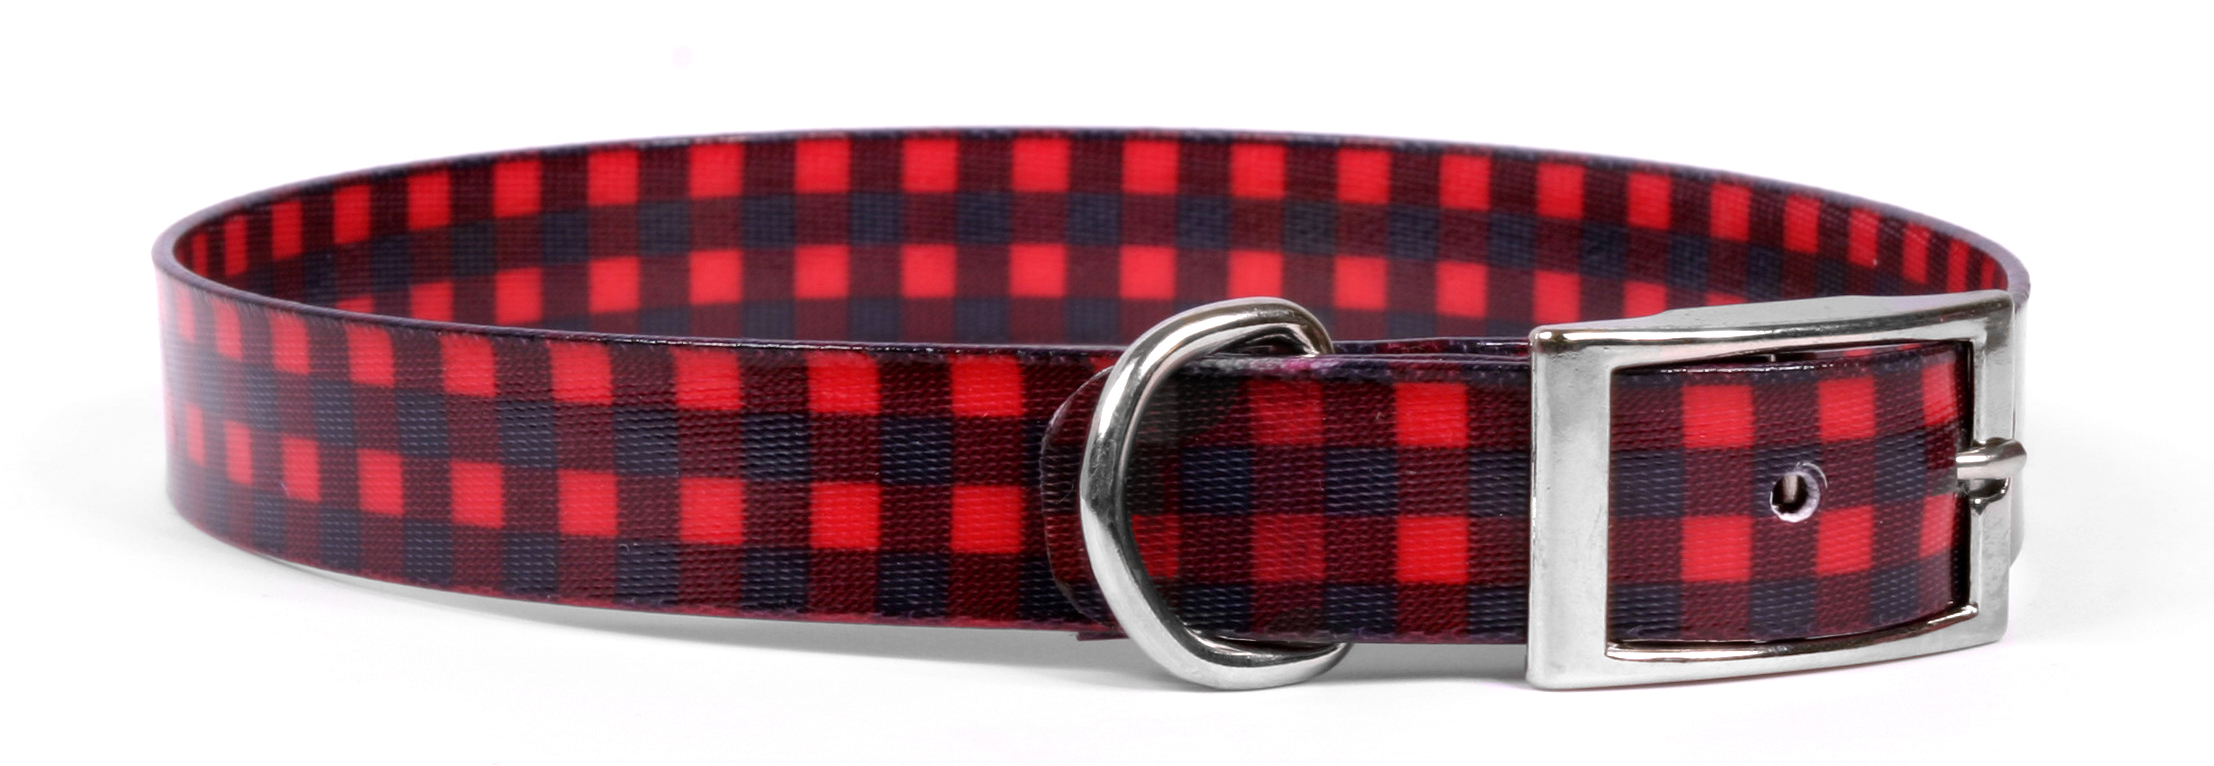 Buffalo Plaid Red Elements Collar